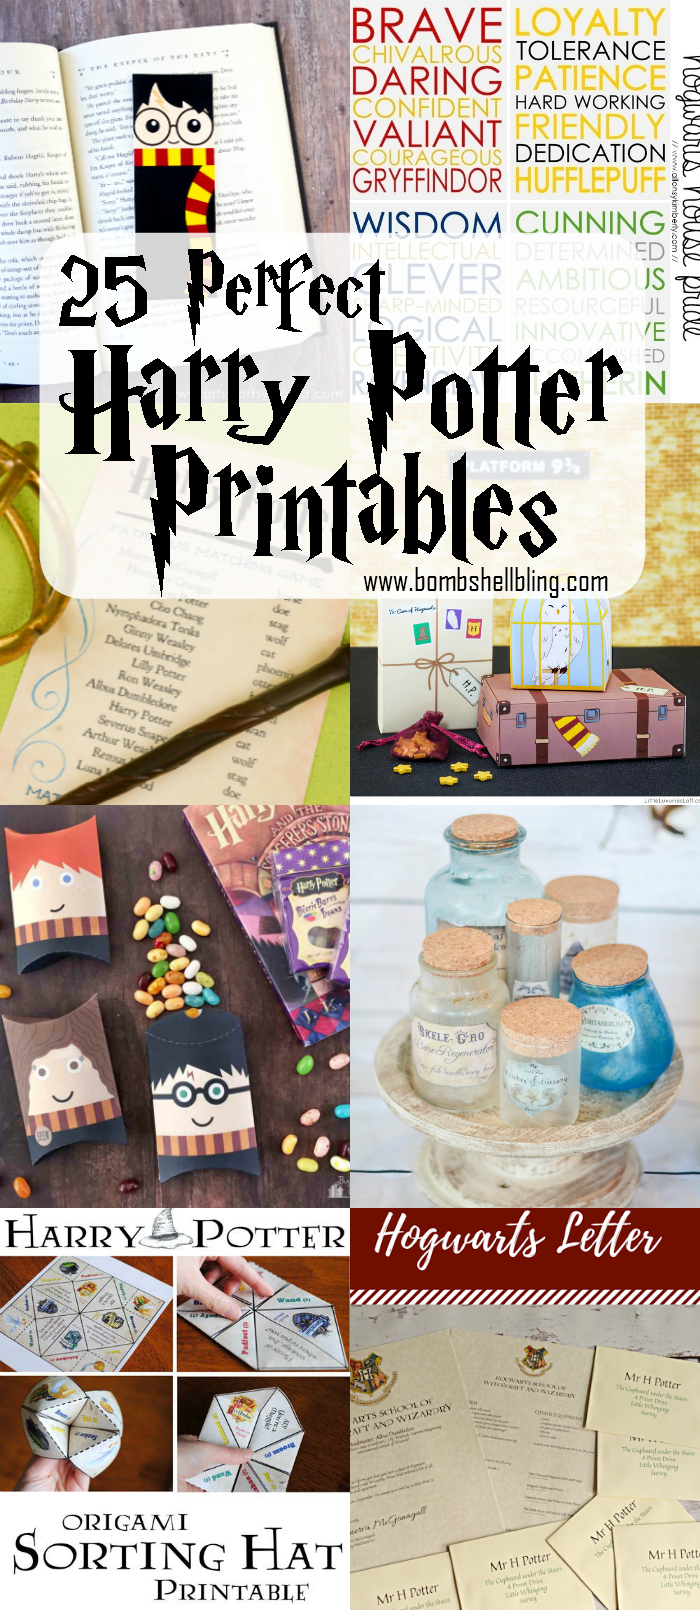 image regarding Harry Potter Decorations Printable titled 25 Great Harry Potter Printables - Gathered via Bombs